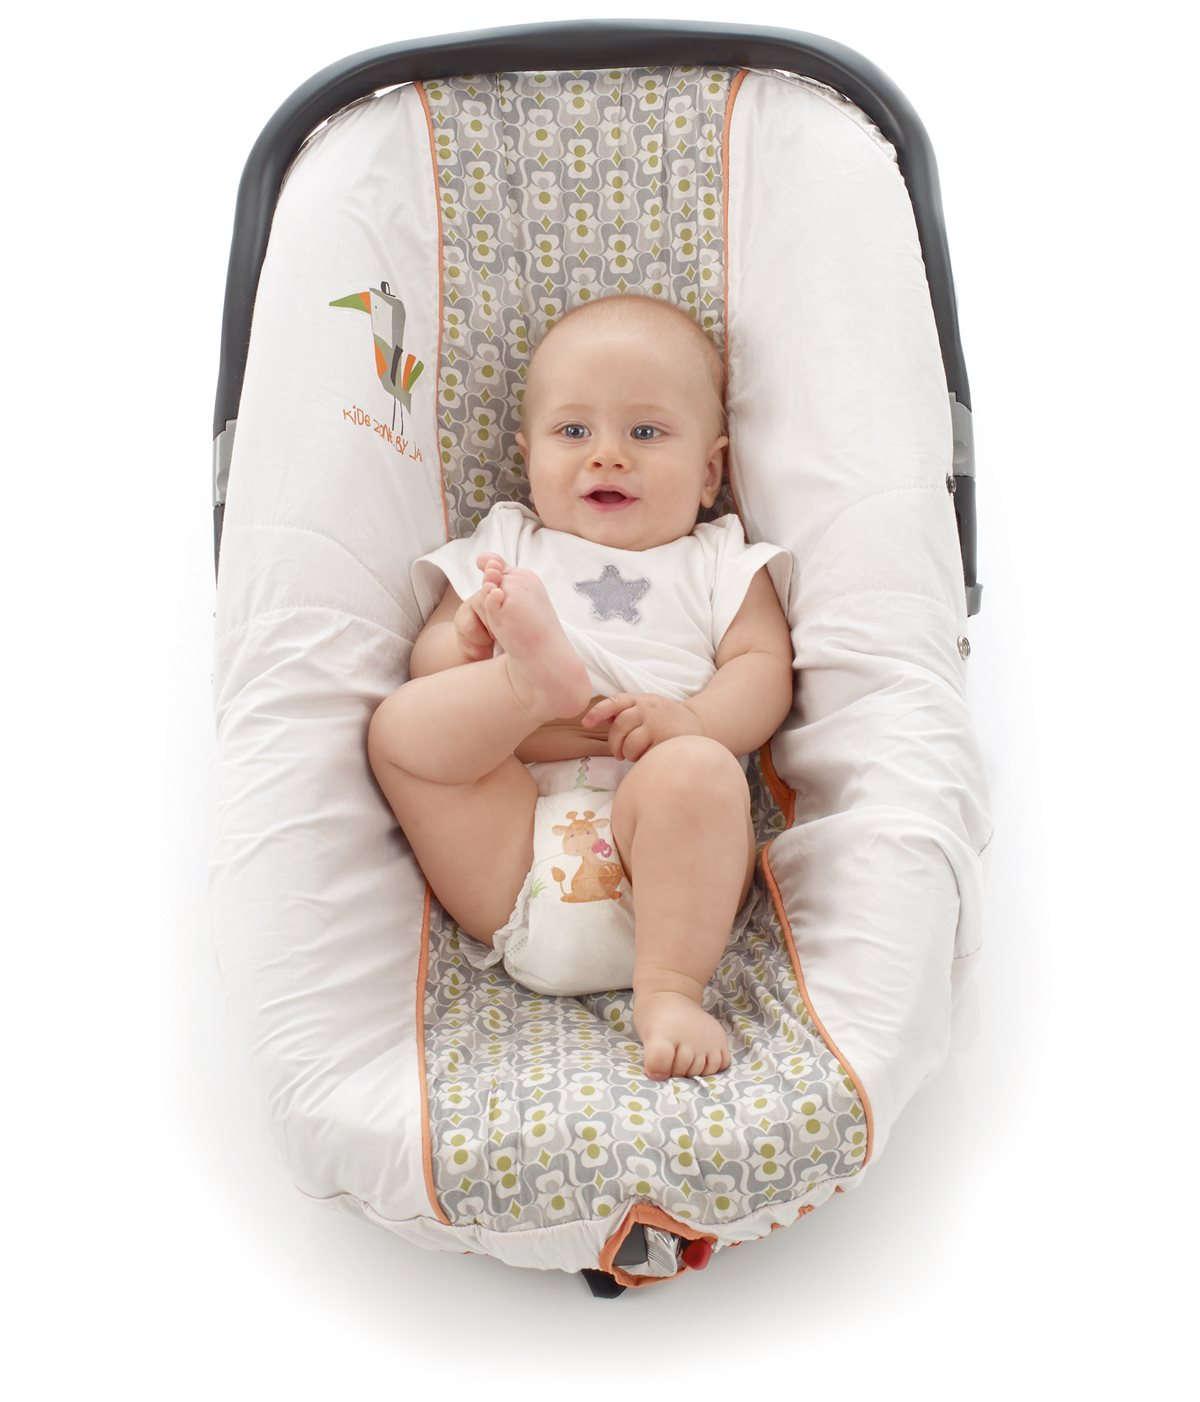 Universal Infant Car Seat Cover